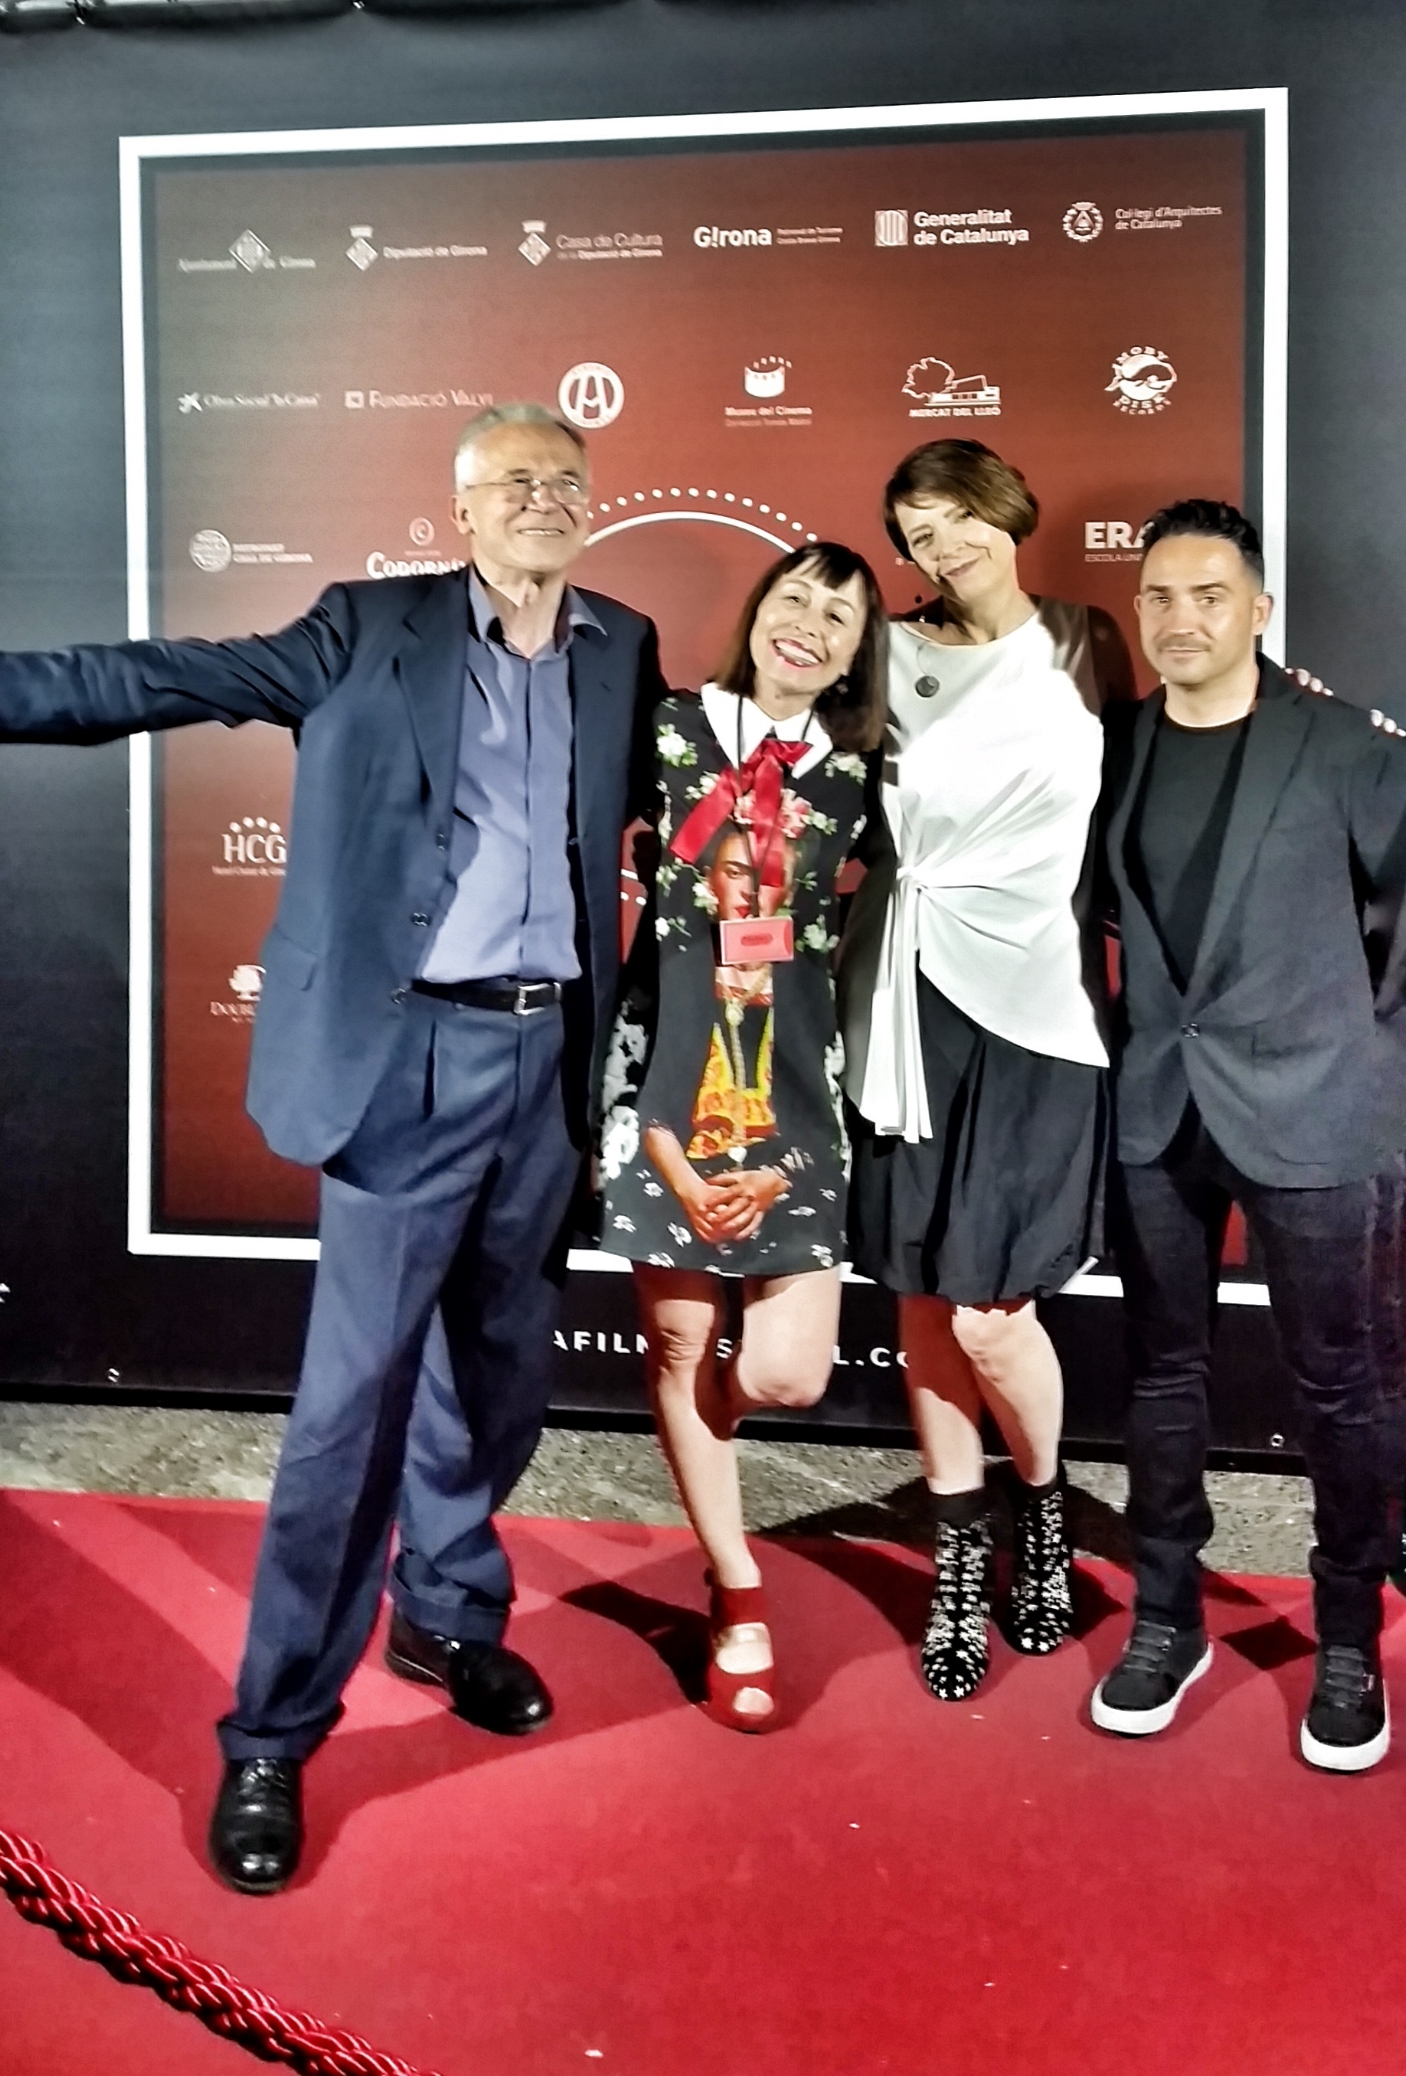 On the red carpet at the Gerona Film Festival with Naomi Lisner and Lluis, the festival director (at left)